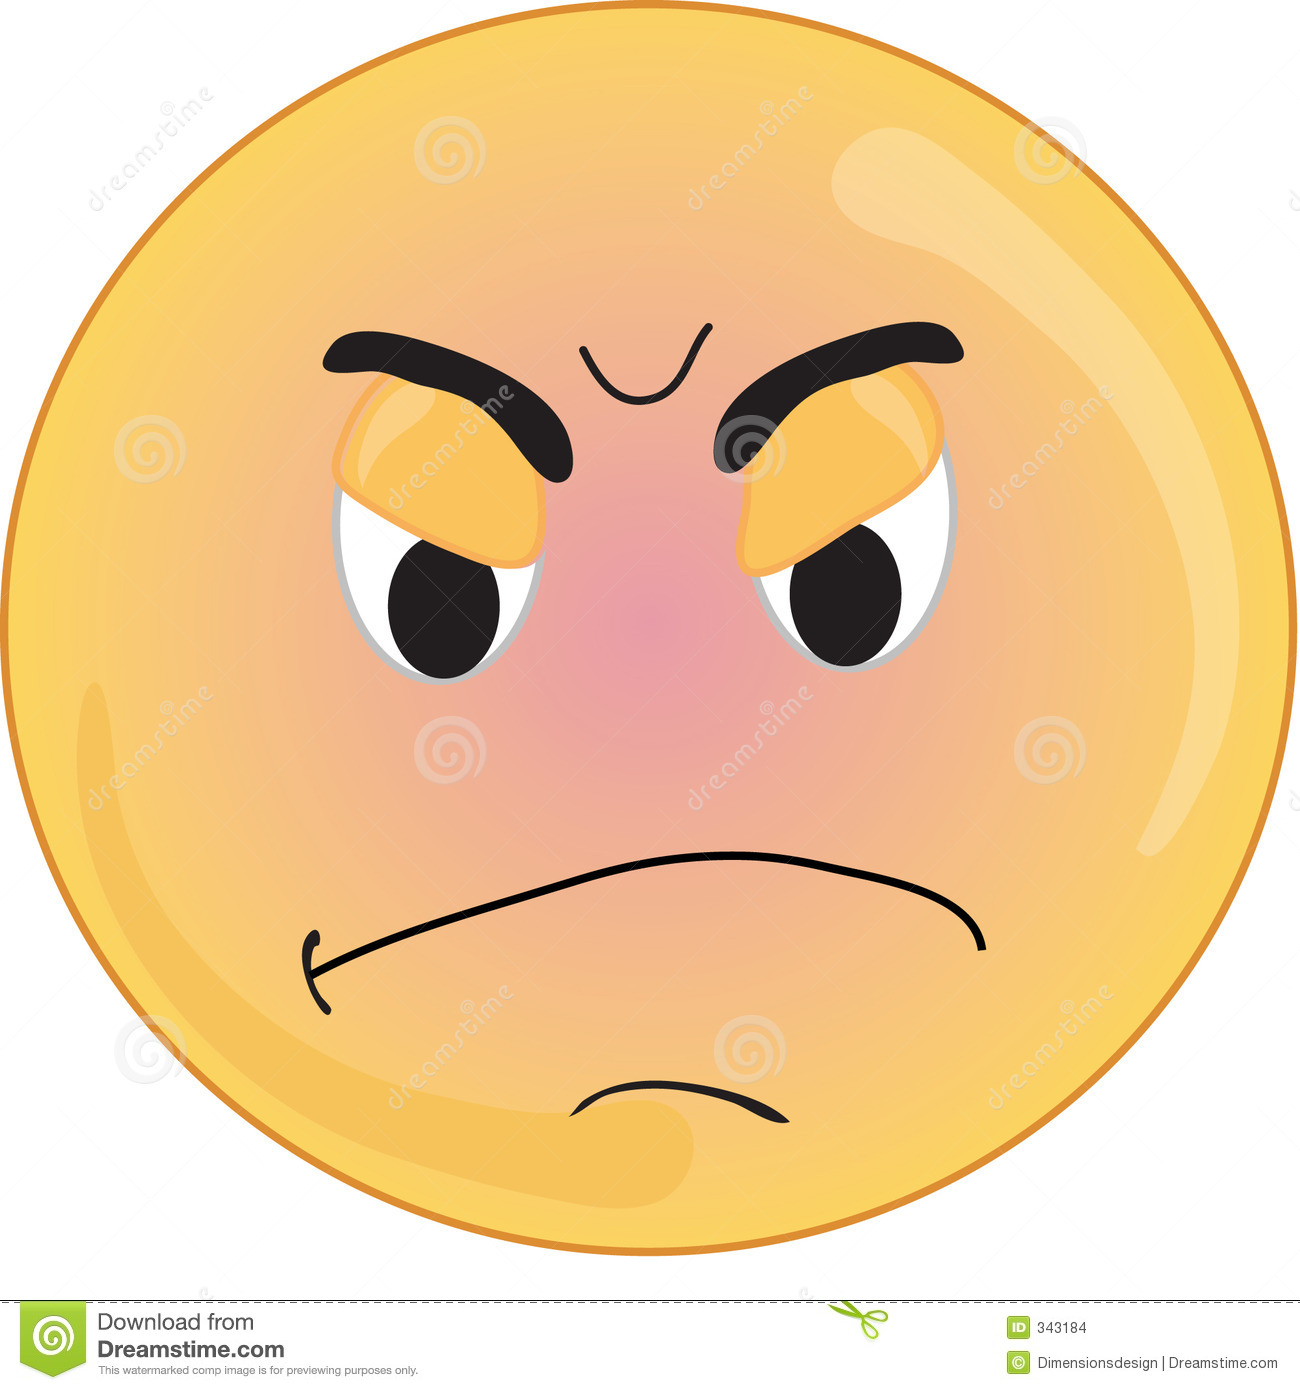 smiley type angry face mr no pr no 4 79941 24